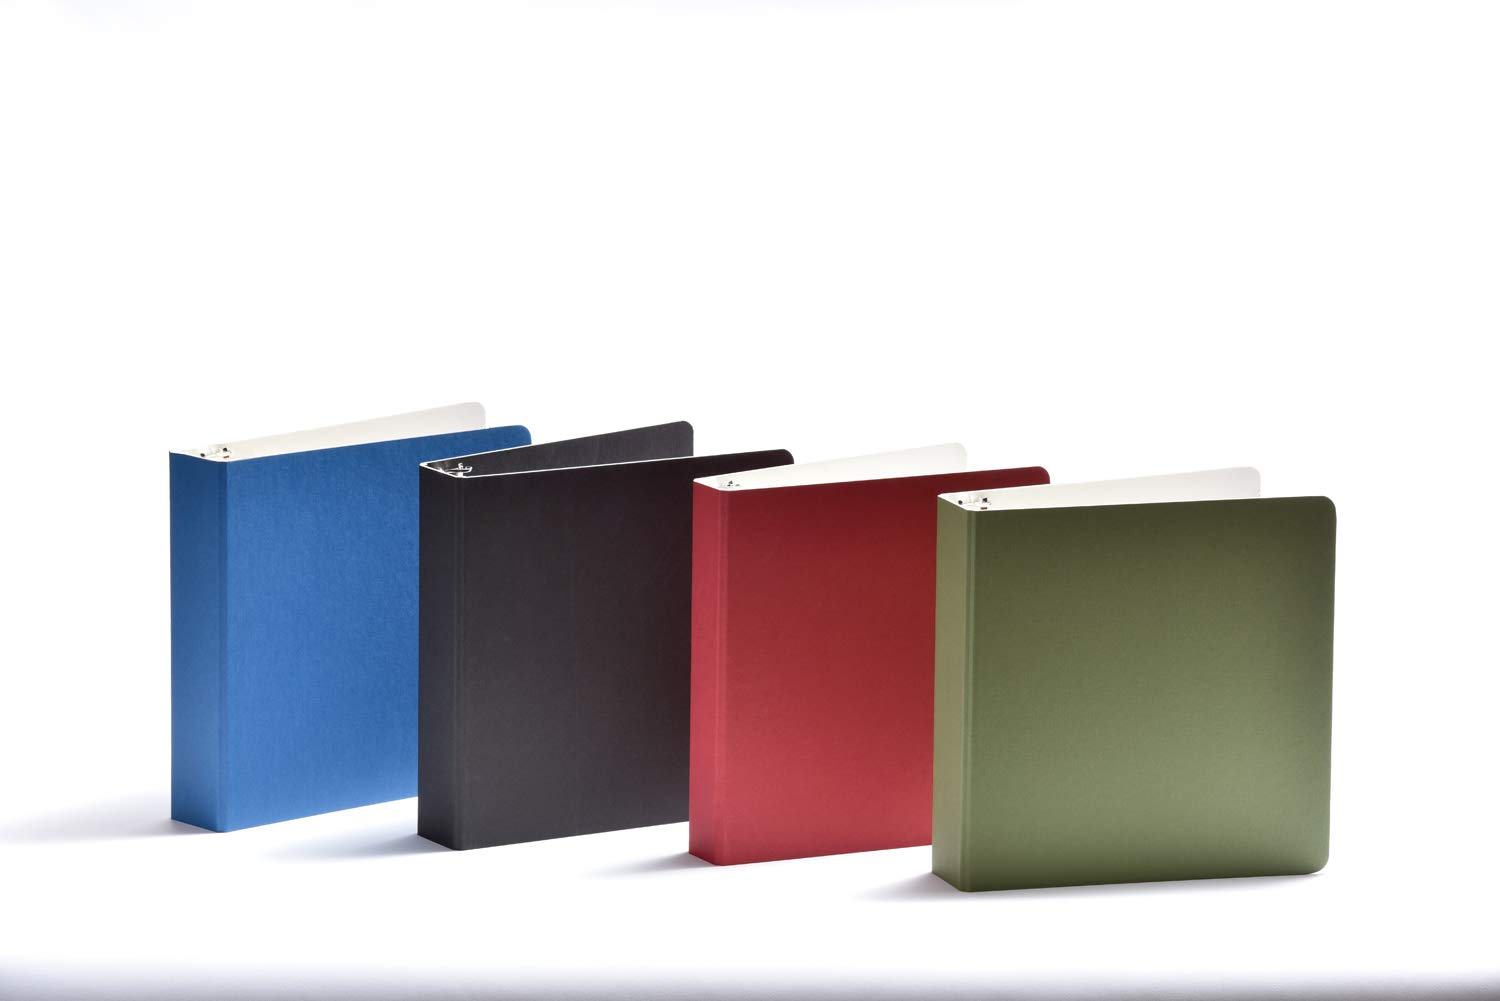 Naked Binder: 3-Ring Binder. Lapis Blue Outside and White Inside. Accommodates up to 9''(w) x 11''(h) Documents. 1.5'' D-Ring. Sold in Sets of 4 Lapis Blue Binders. 100% Recyclable. by Naked Binder